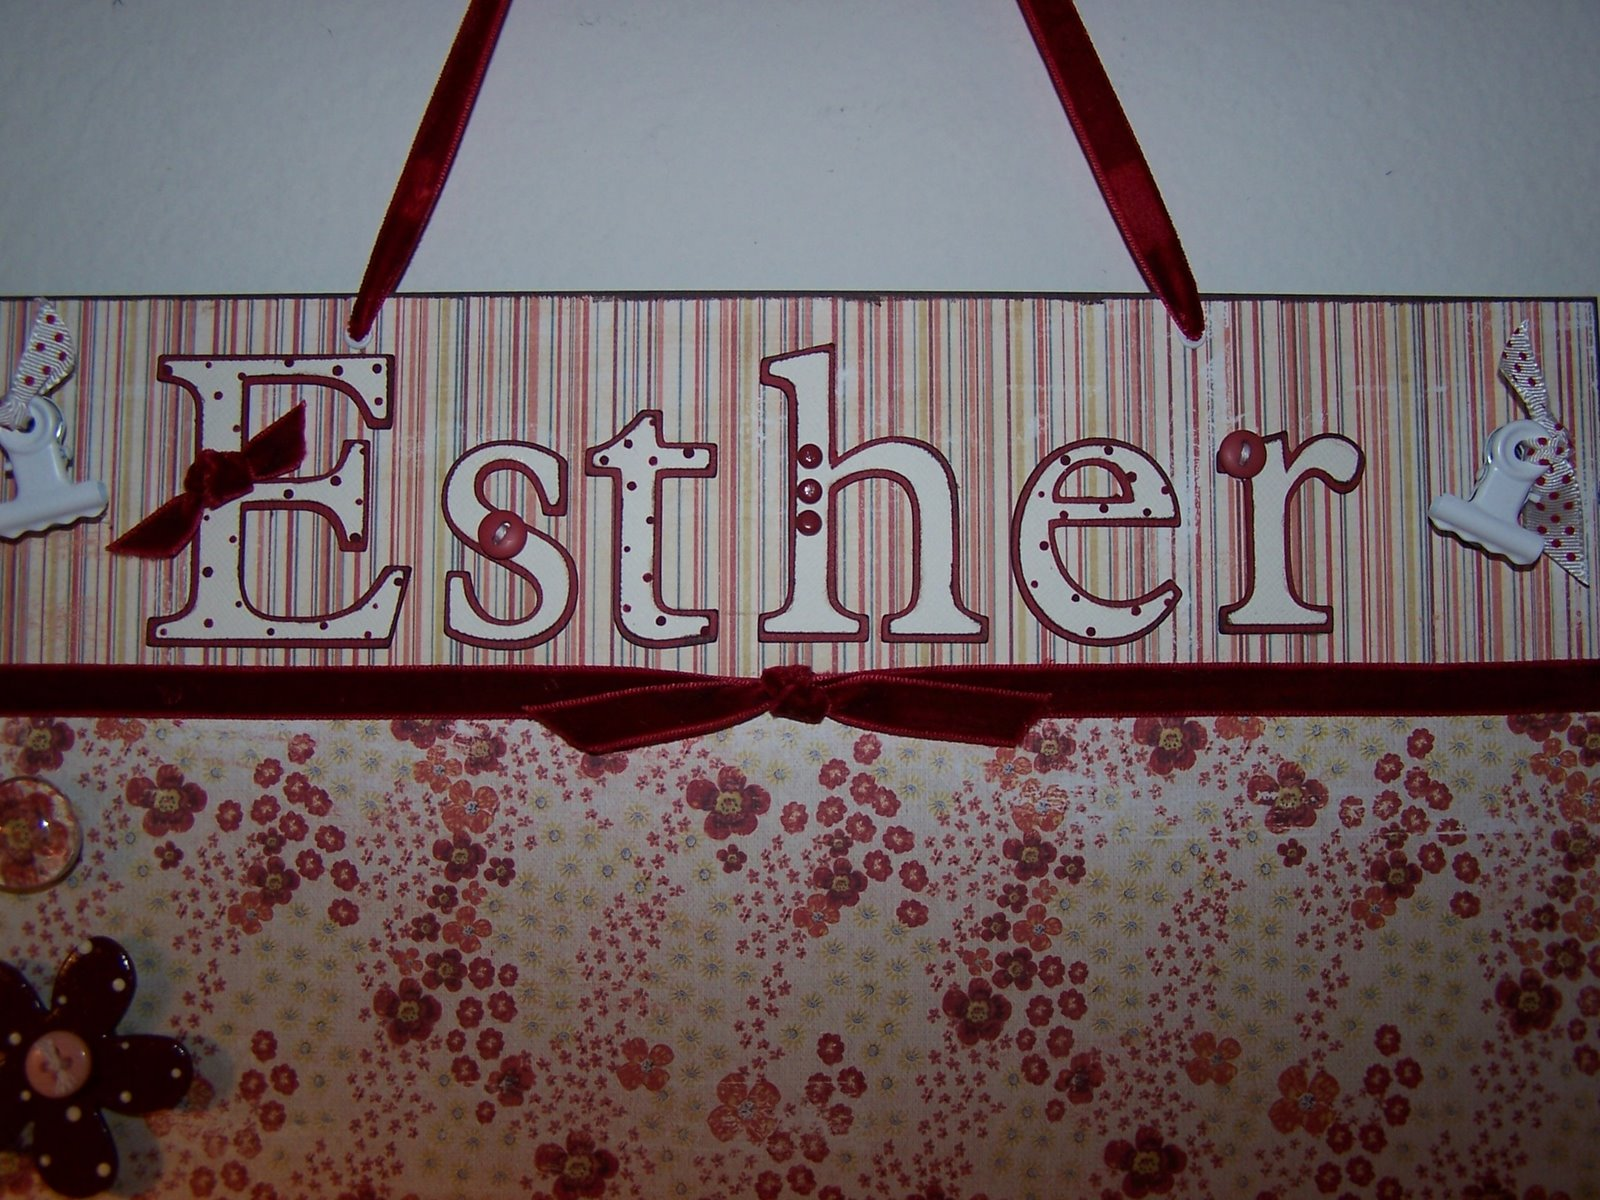 [Esther]